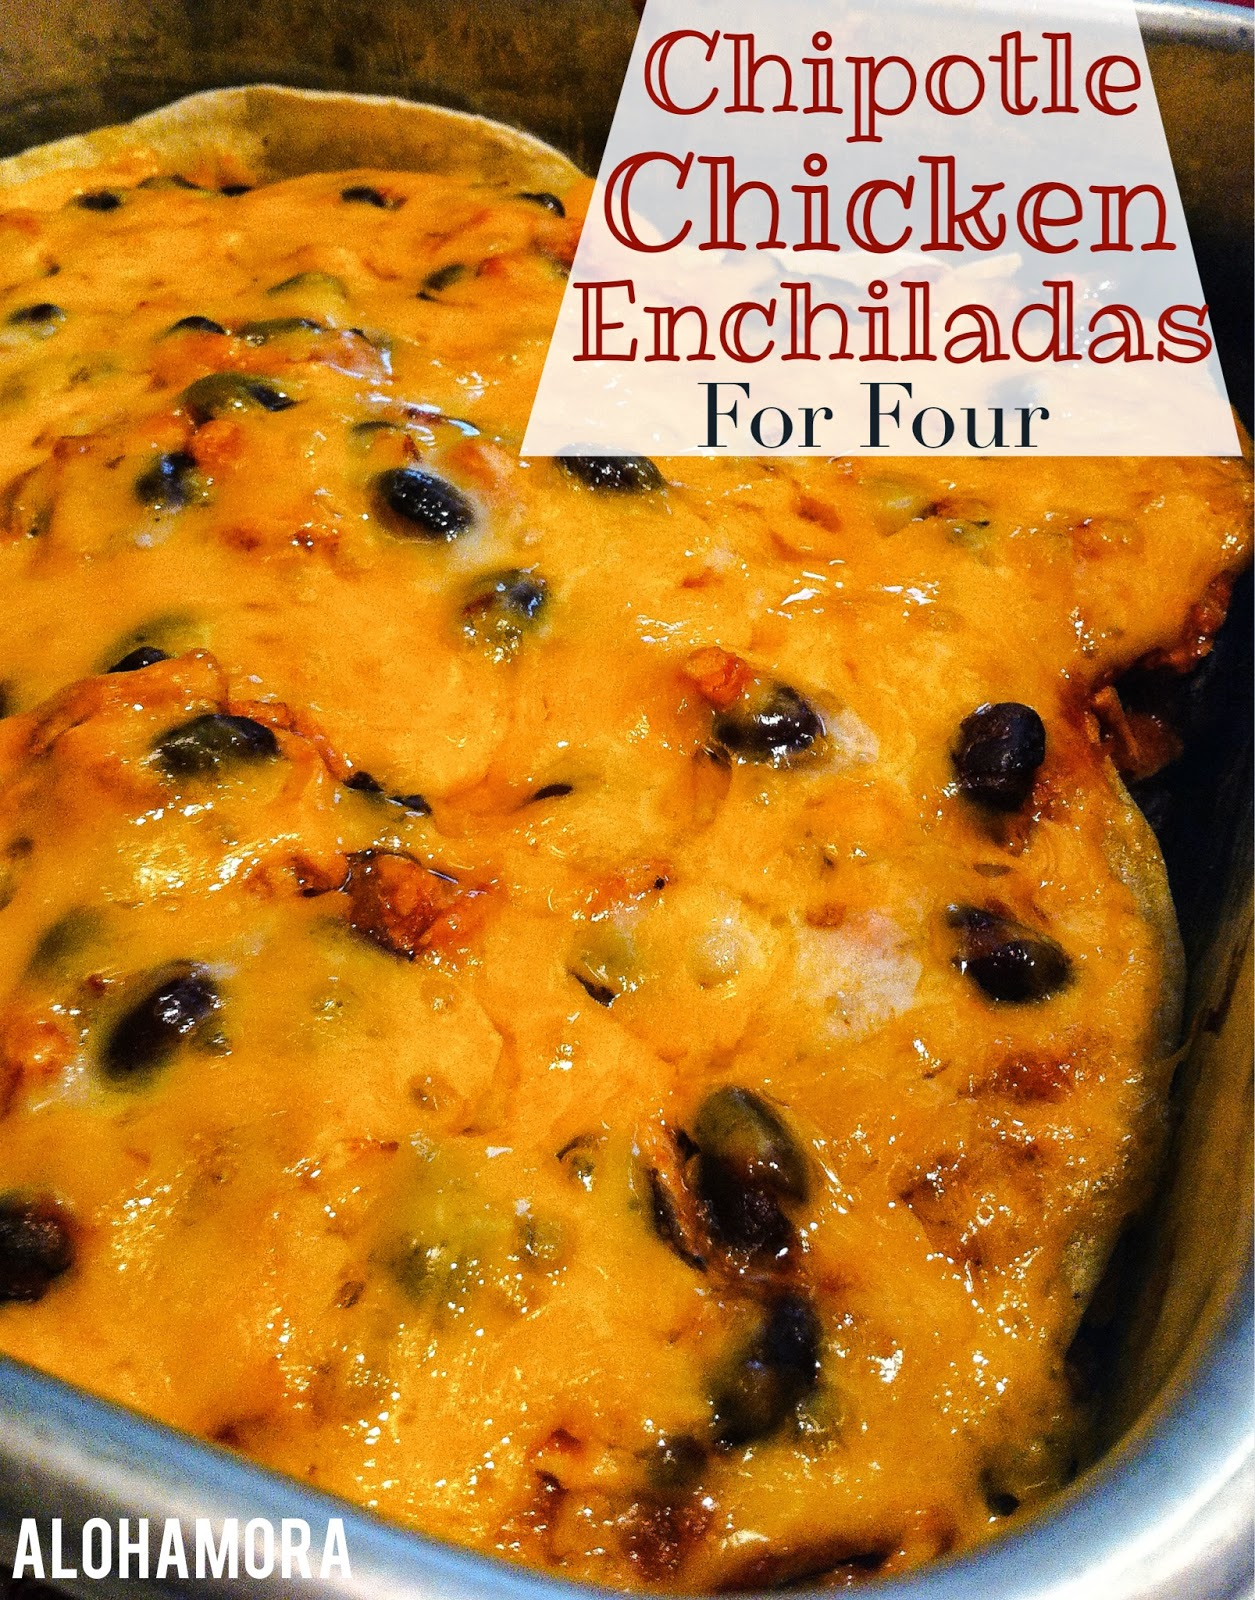 Delicious sweet and spicy chipotle chicken enchilada casserole for a small family.  Plus it is naturally gluten free.  This easy to make casserole is fast to make for a busy night.  Alohamora Open a Book http://www.alohamoraopenabook.blogspot.com/